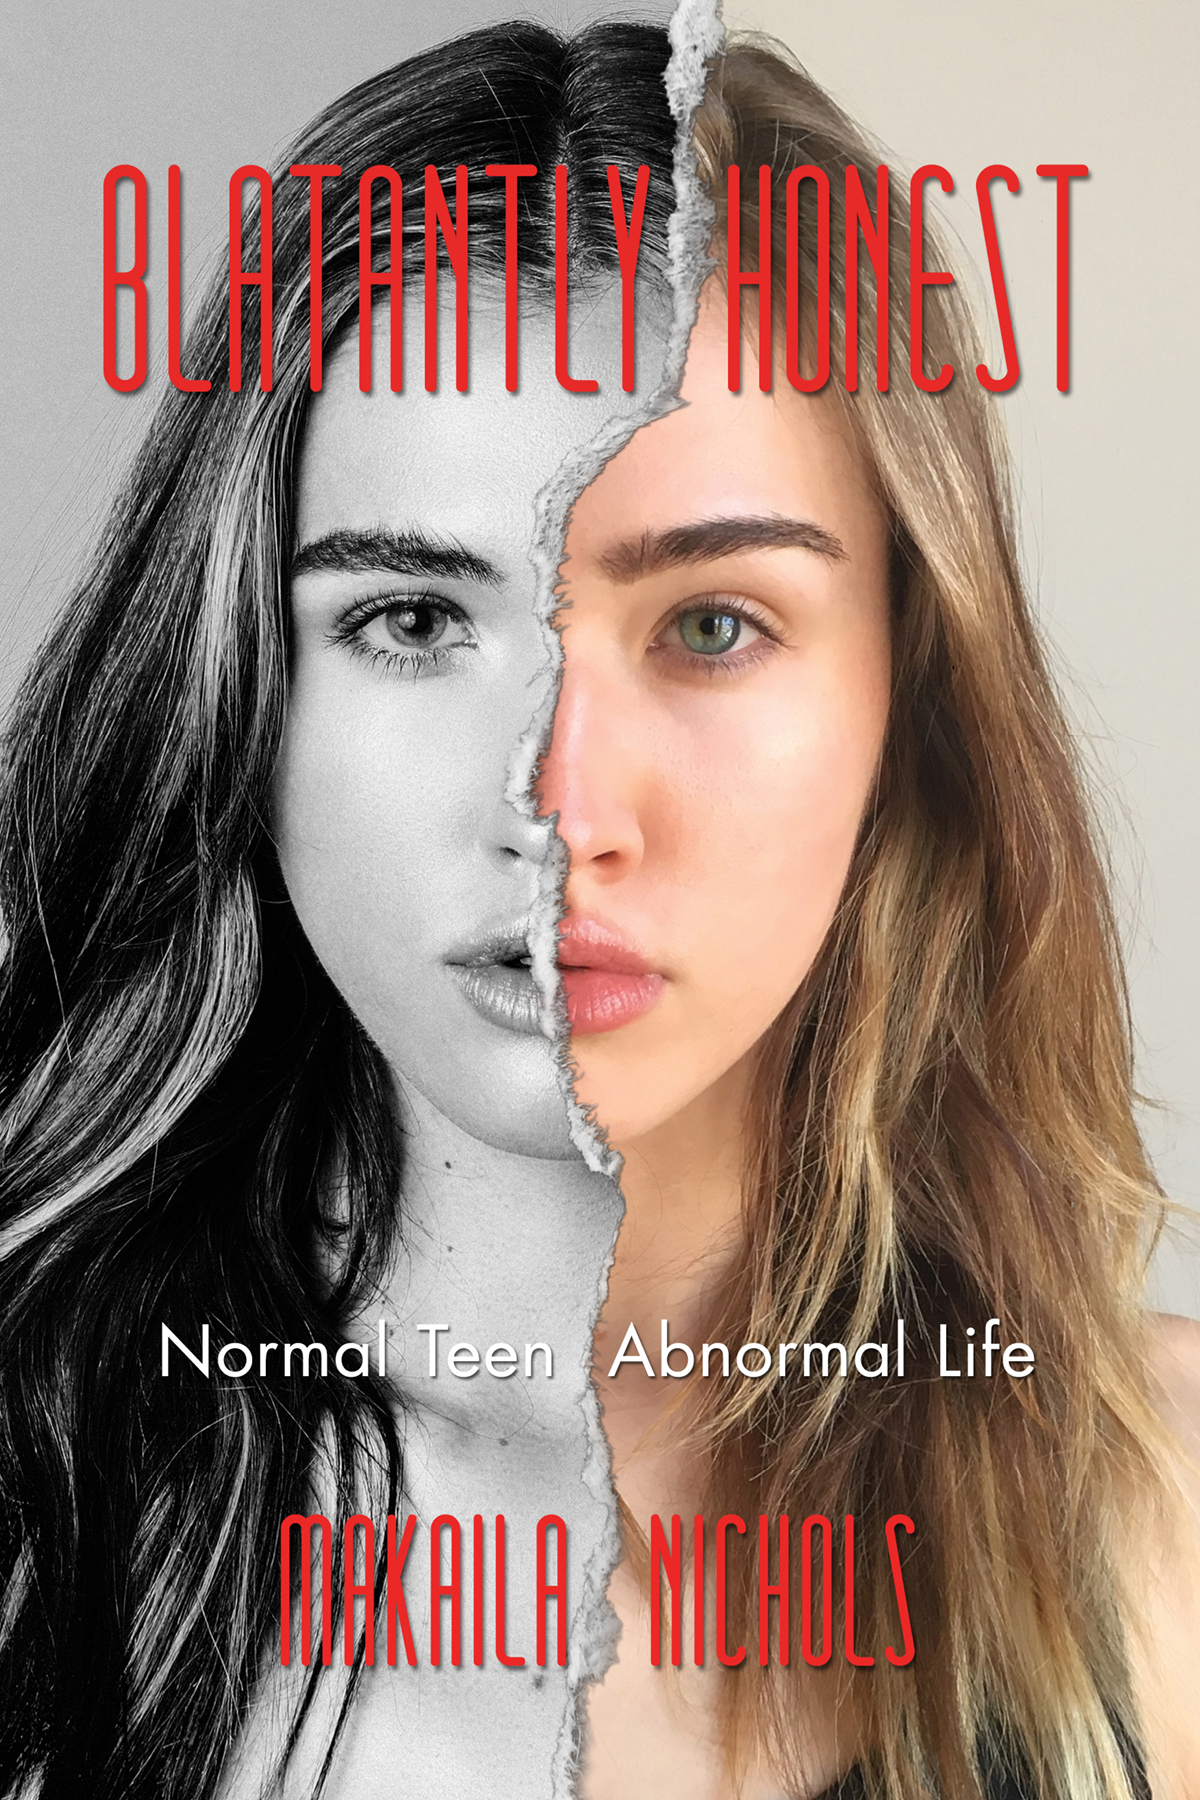 Blatantly Honest: Normal Teen, Abnormal Life